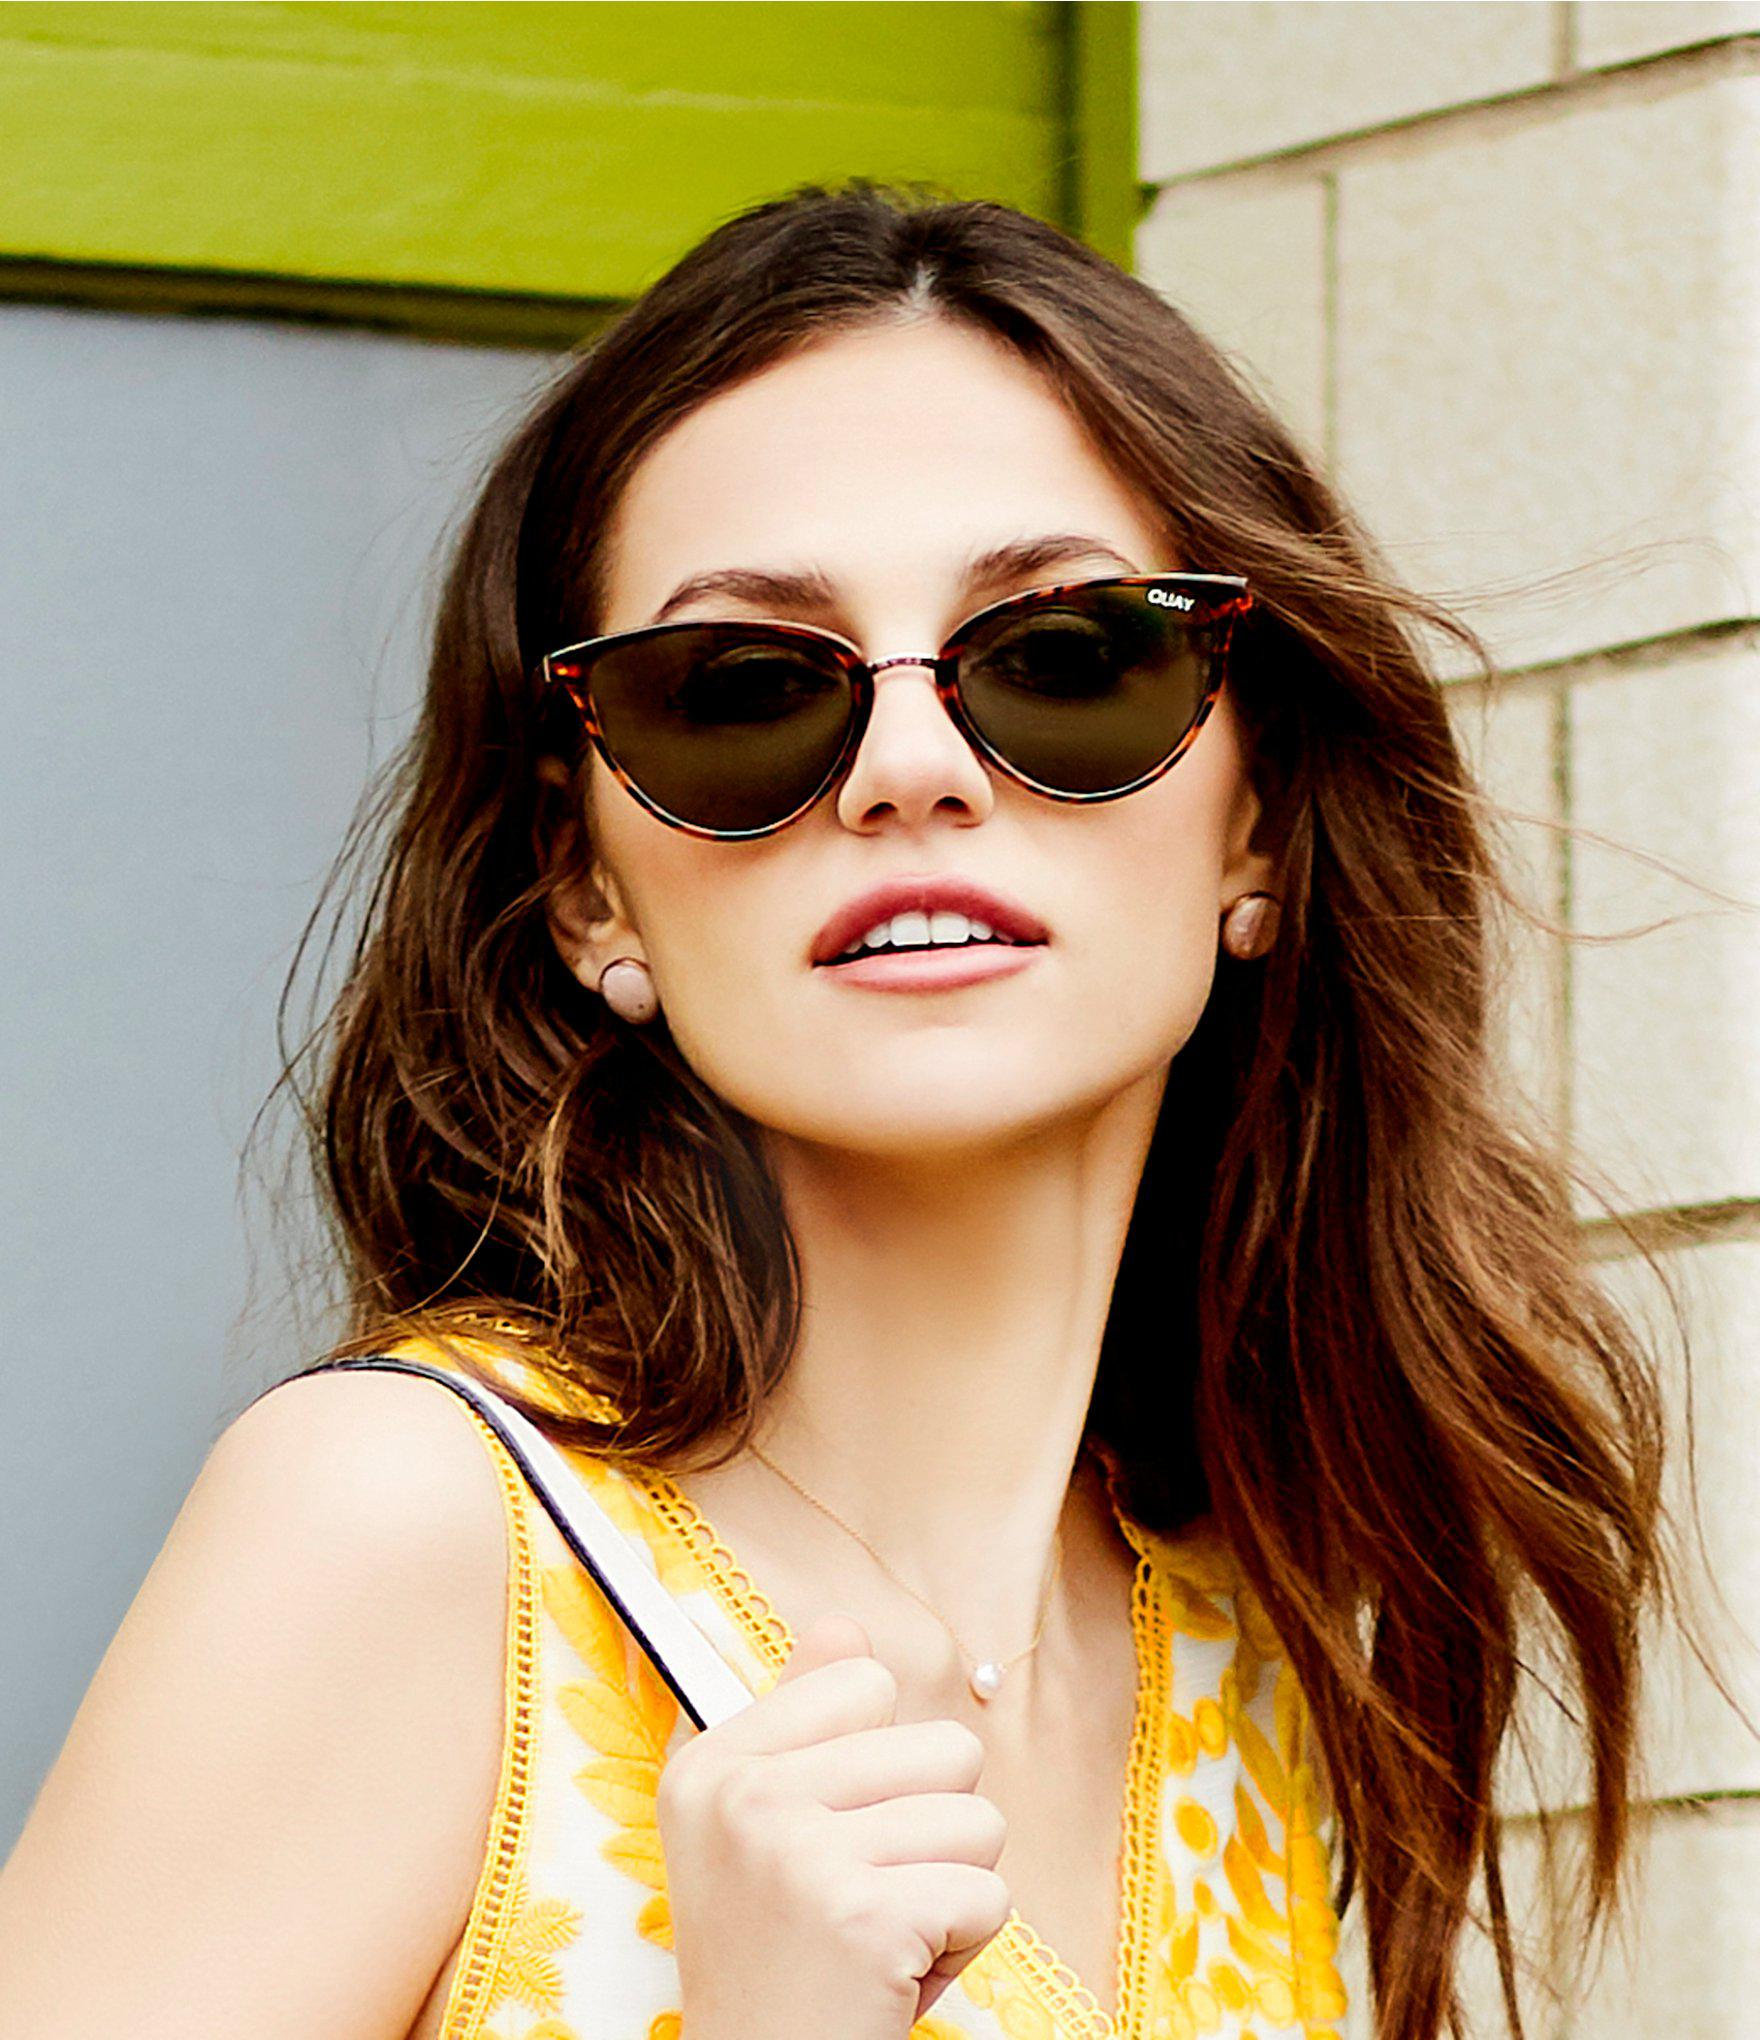 c6b03cc8058f9 Quay - Multicolor Rumors Round Cat-eye Sunglasses - Lyst. View fullscreen